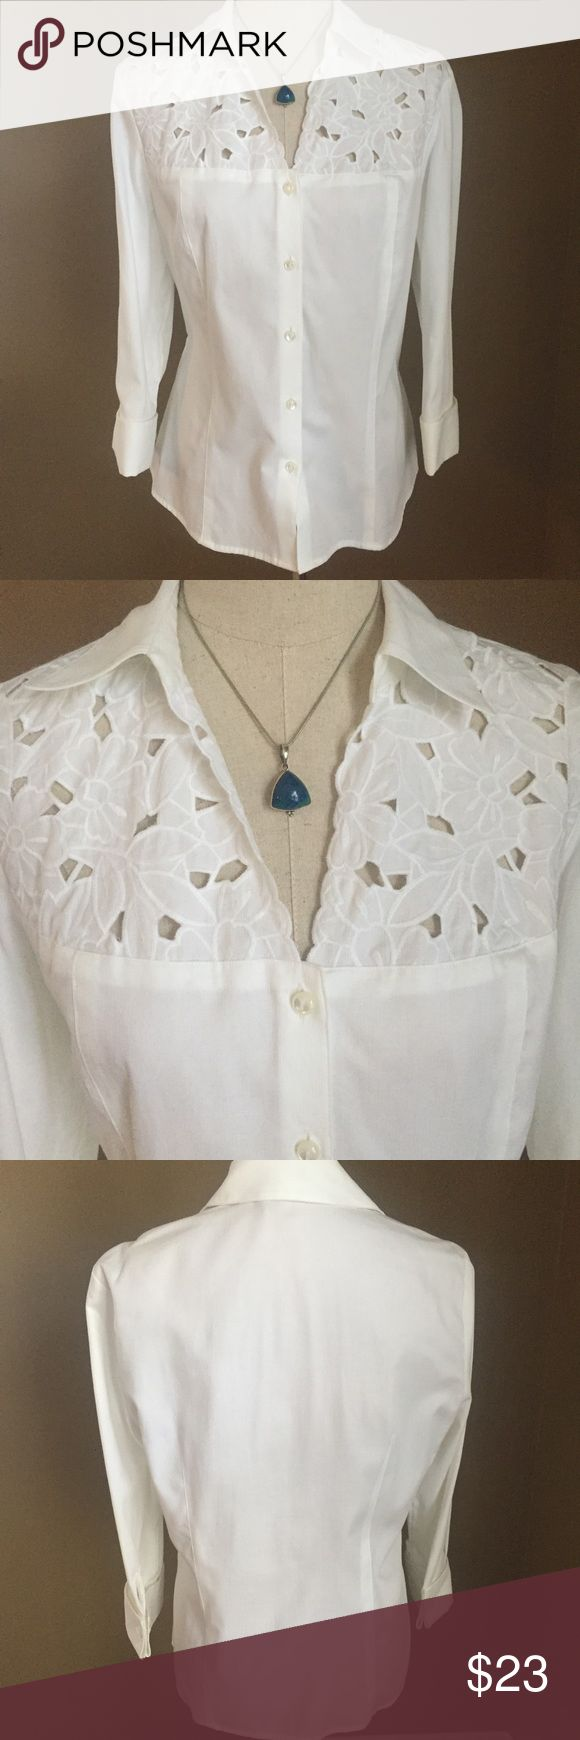 """JONES NEW YORK SIGNATURE White Floral Blouse This blouse is a showstopper! The beautifully detailed and outlined florals are eye catching. There are five pearl buttons to accentuate the front. Sleeves are 3/4"""". There are very clean lines in the front and back which lend itself to a slimming effect. This shirt looks its best when ironed or steamed. 100% cotton/machine wash cold. This blouse has been very well taken care of (only worn once) and is looking for a good home. ❤️ Jones New York…"""